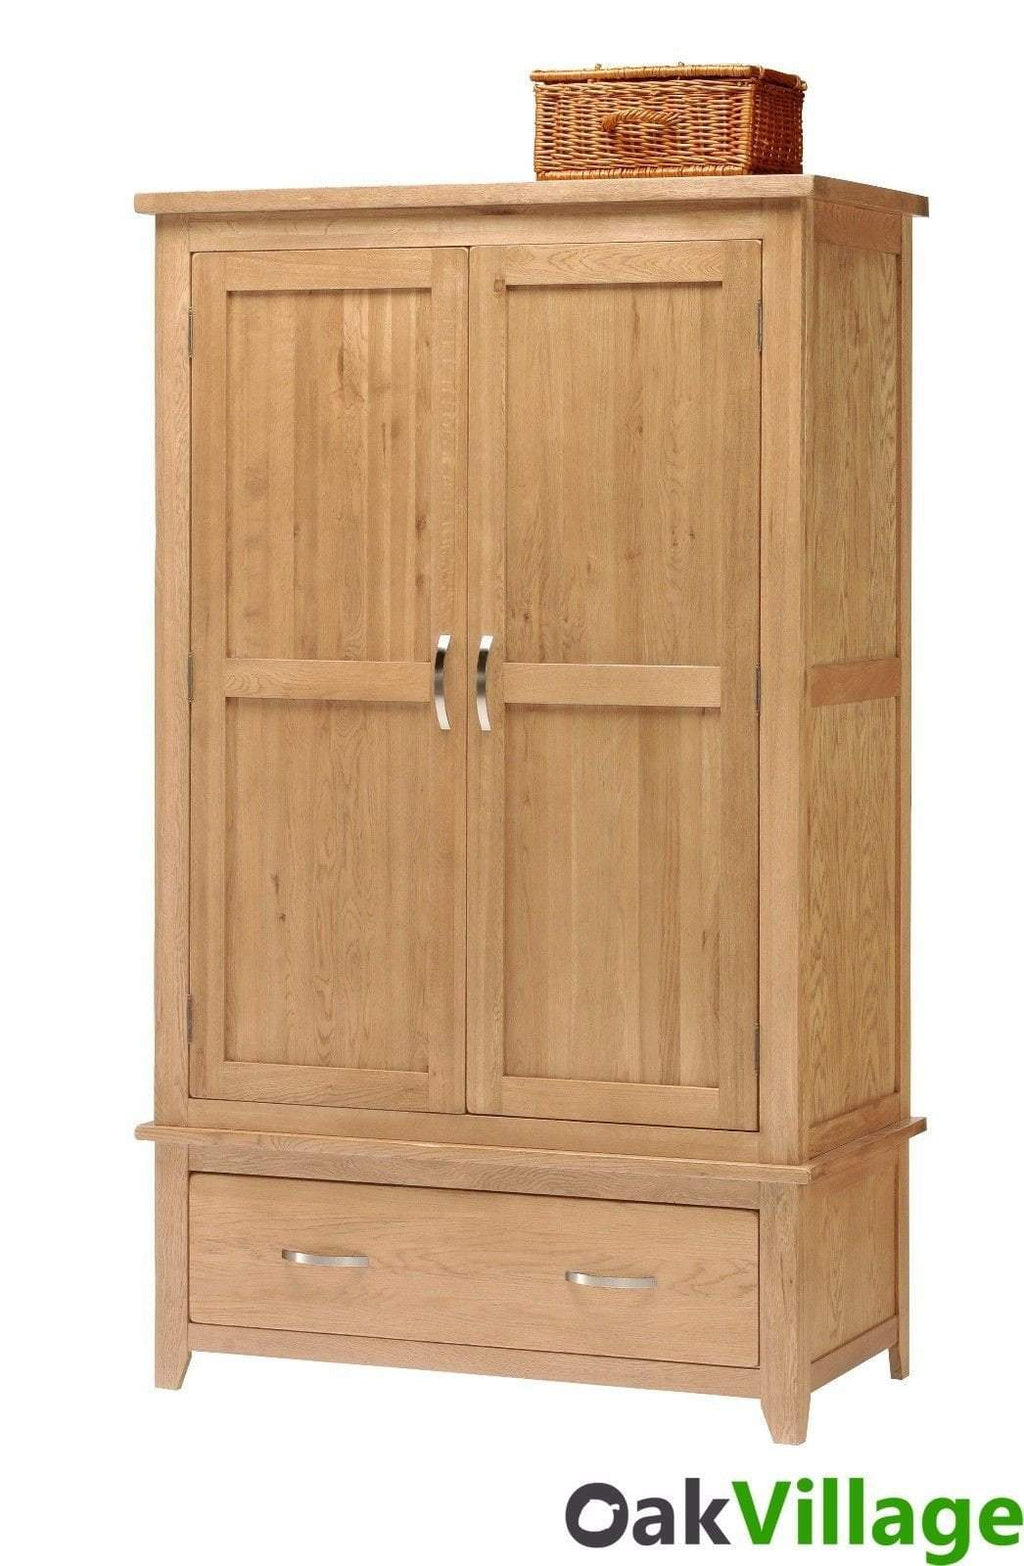 Oakworth Oak 2 Door Double Wardrobe - Oak Village